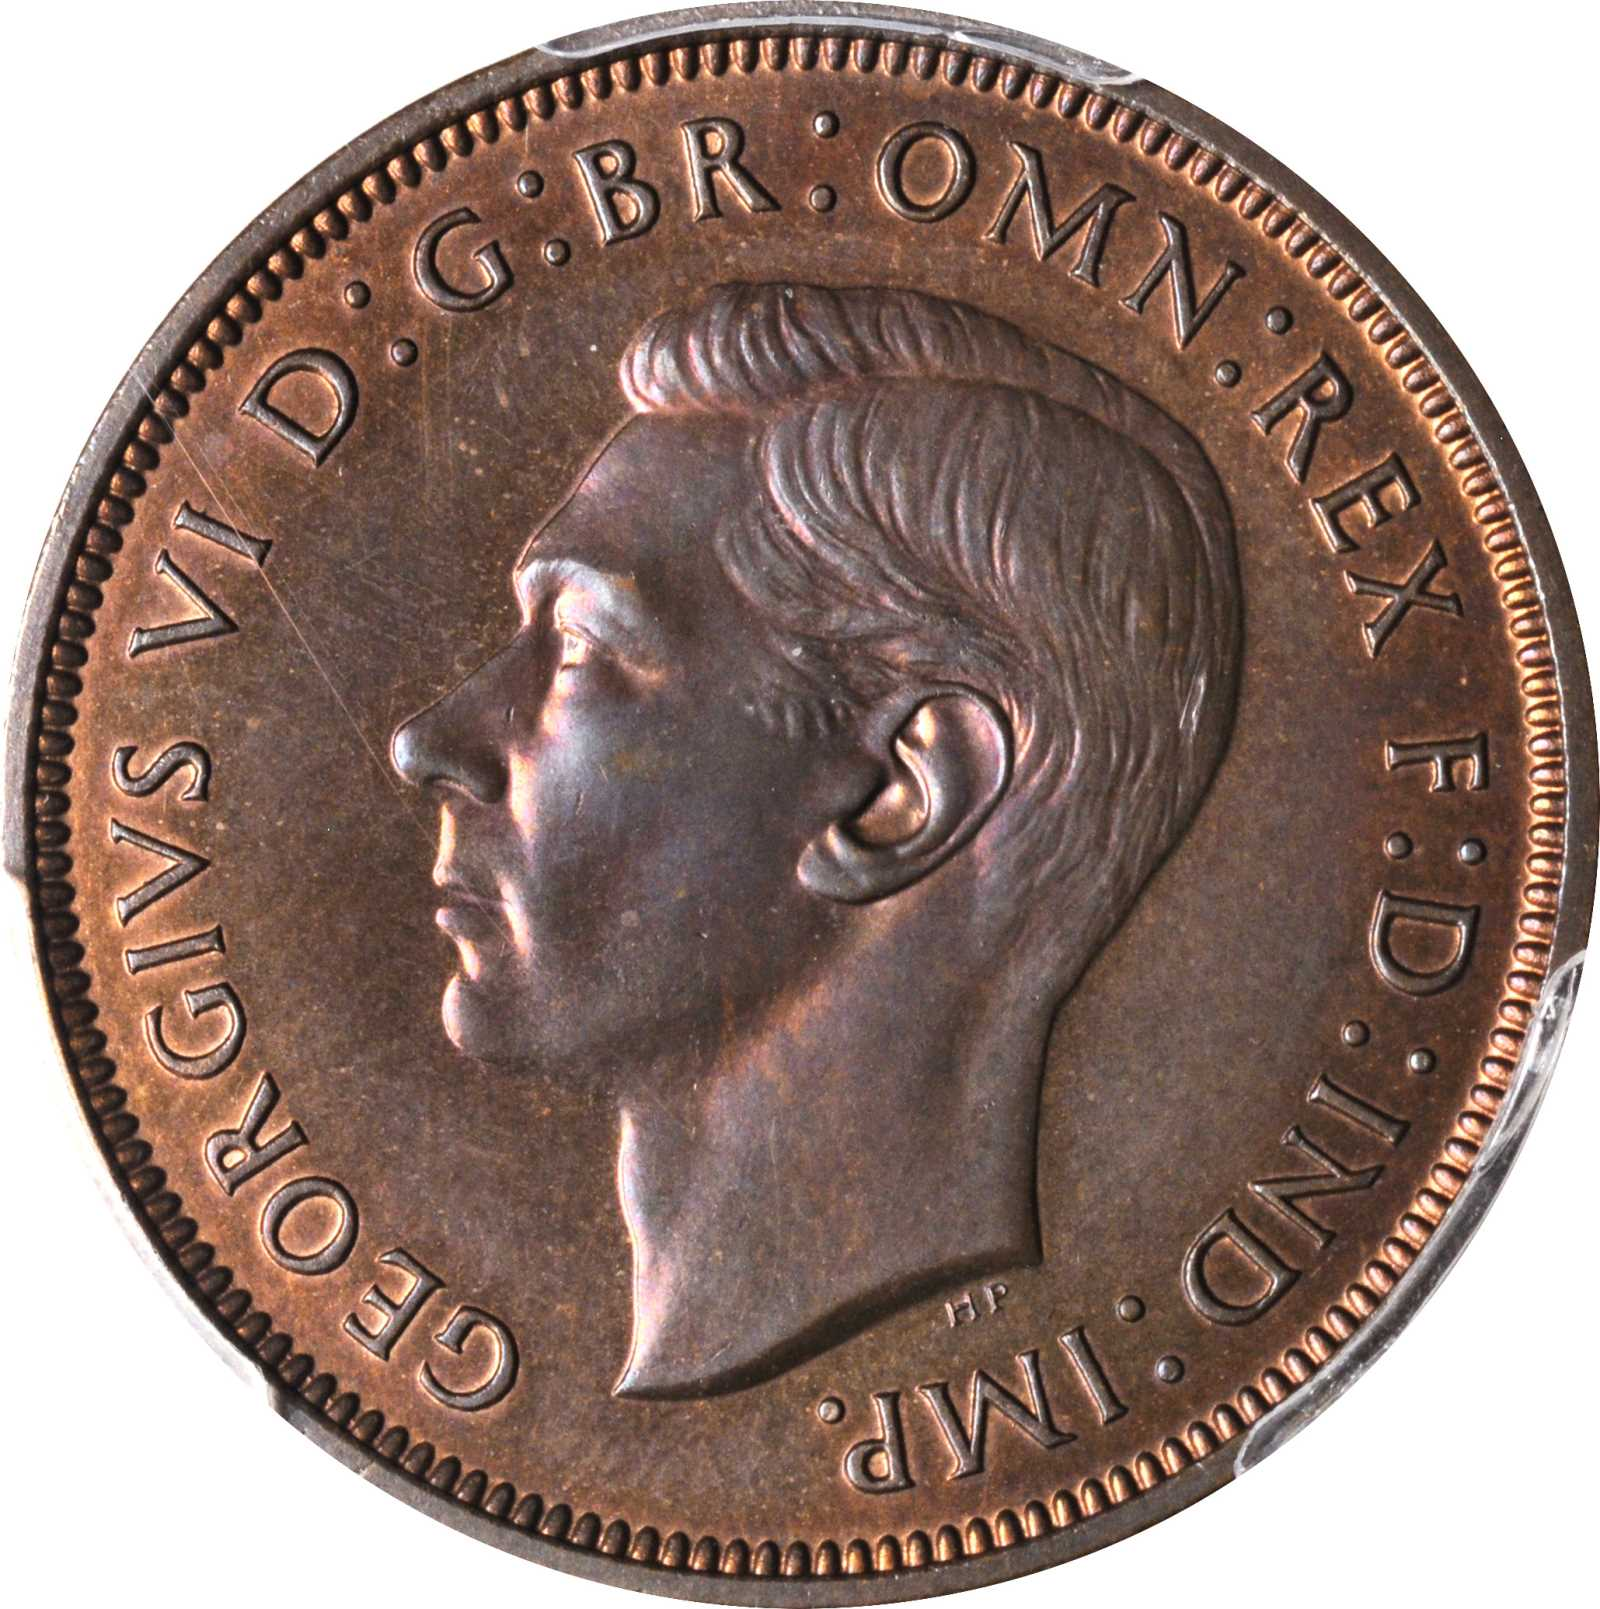 Penny 1938: Photo Great Britain 1938 penny